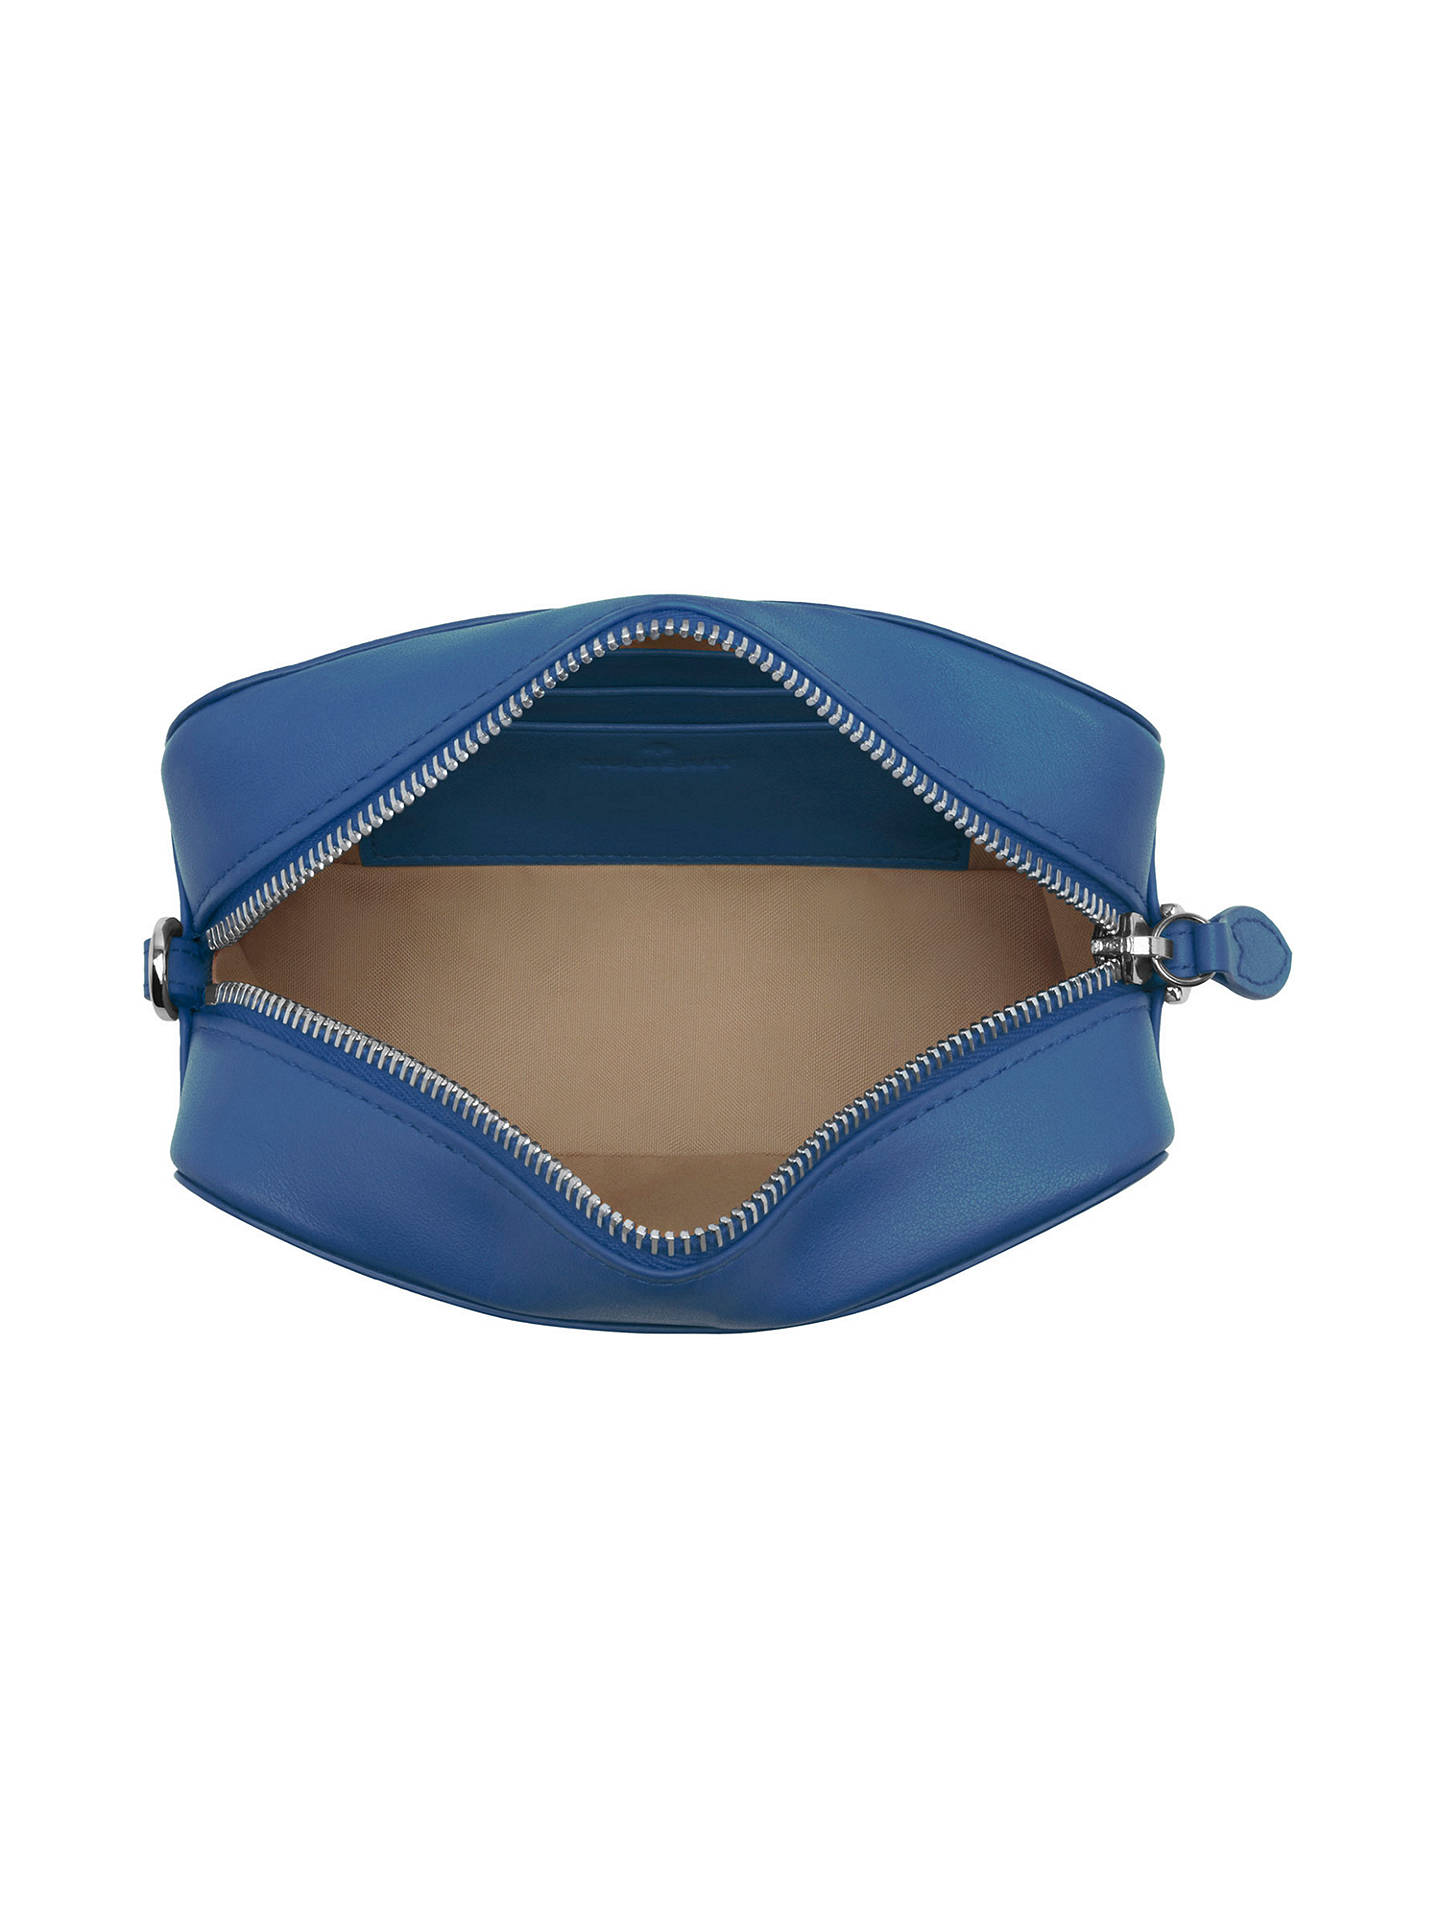 69a632d571 sale mulberry handbags dbf04 77820; sale buymulberry blossom pochette  leather bag with strap sea blue online at johnlewis 58f7b f83d2